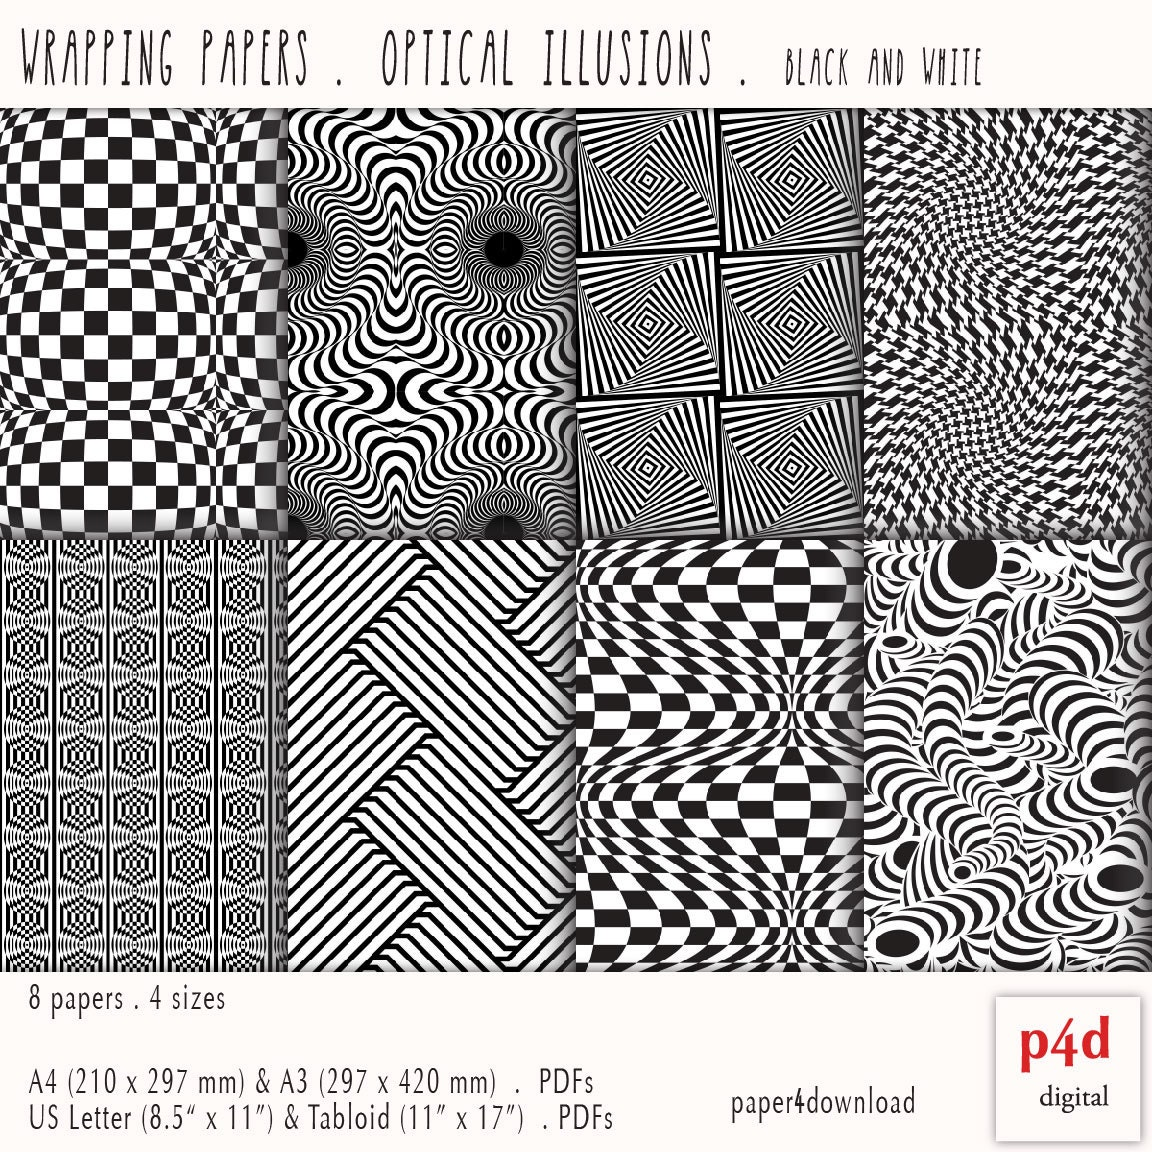 optical illusions paper pdf wrapping printable